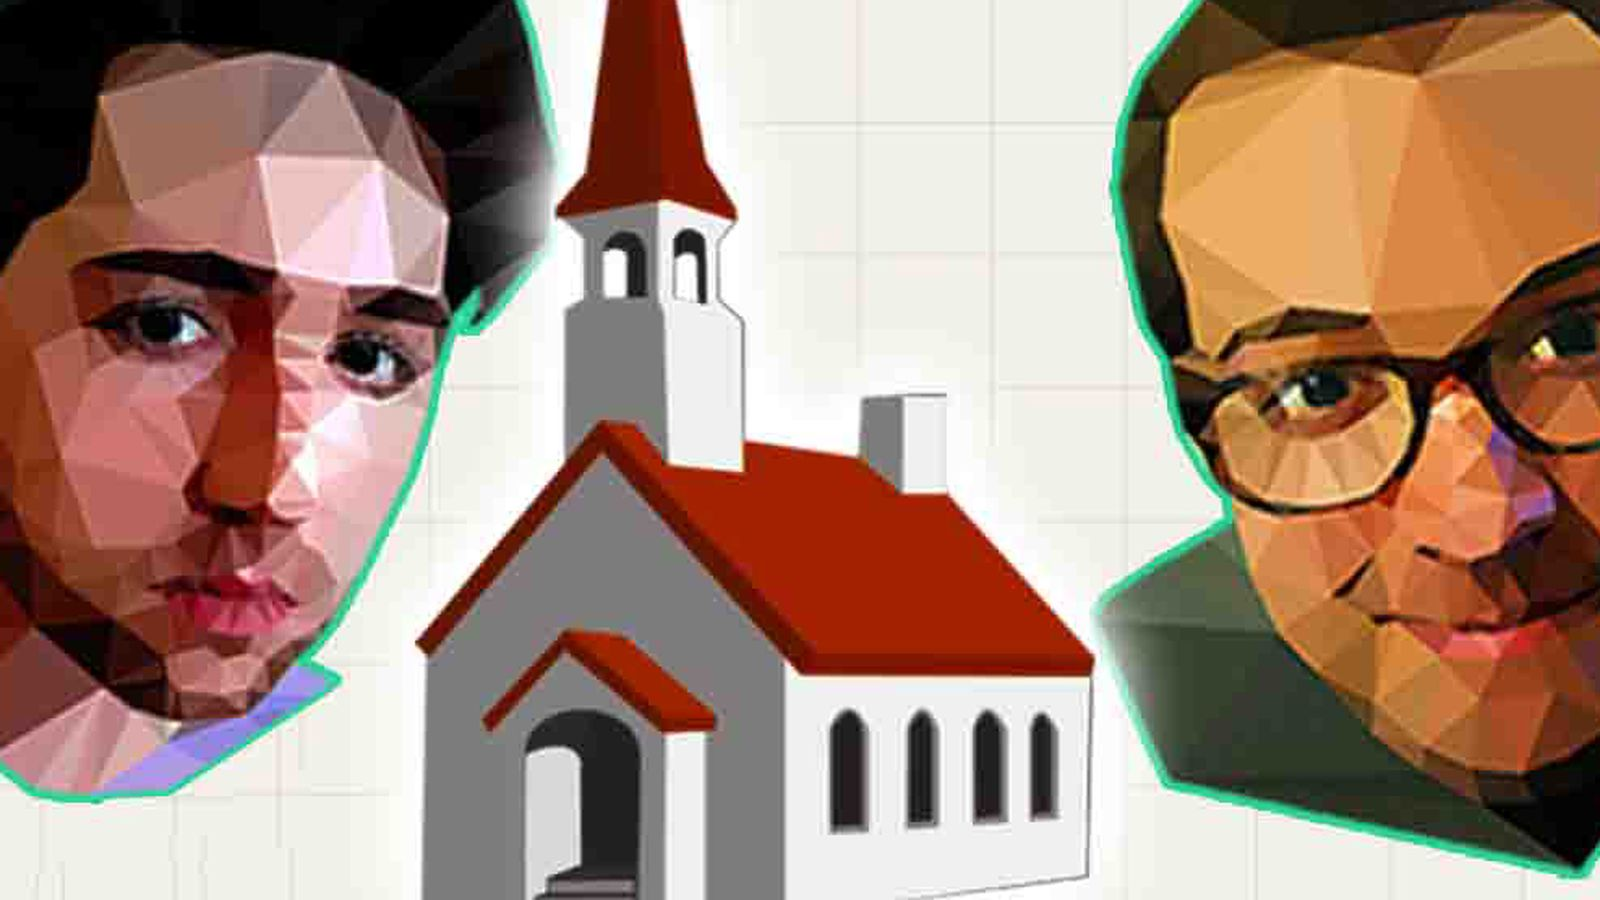 CoolGames Inc Animated: Creating Church 2, the sequel to church